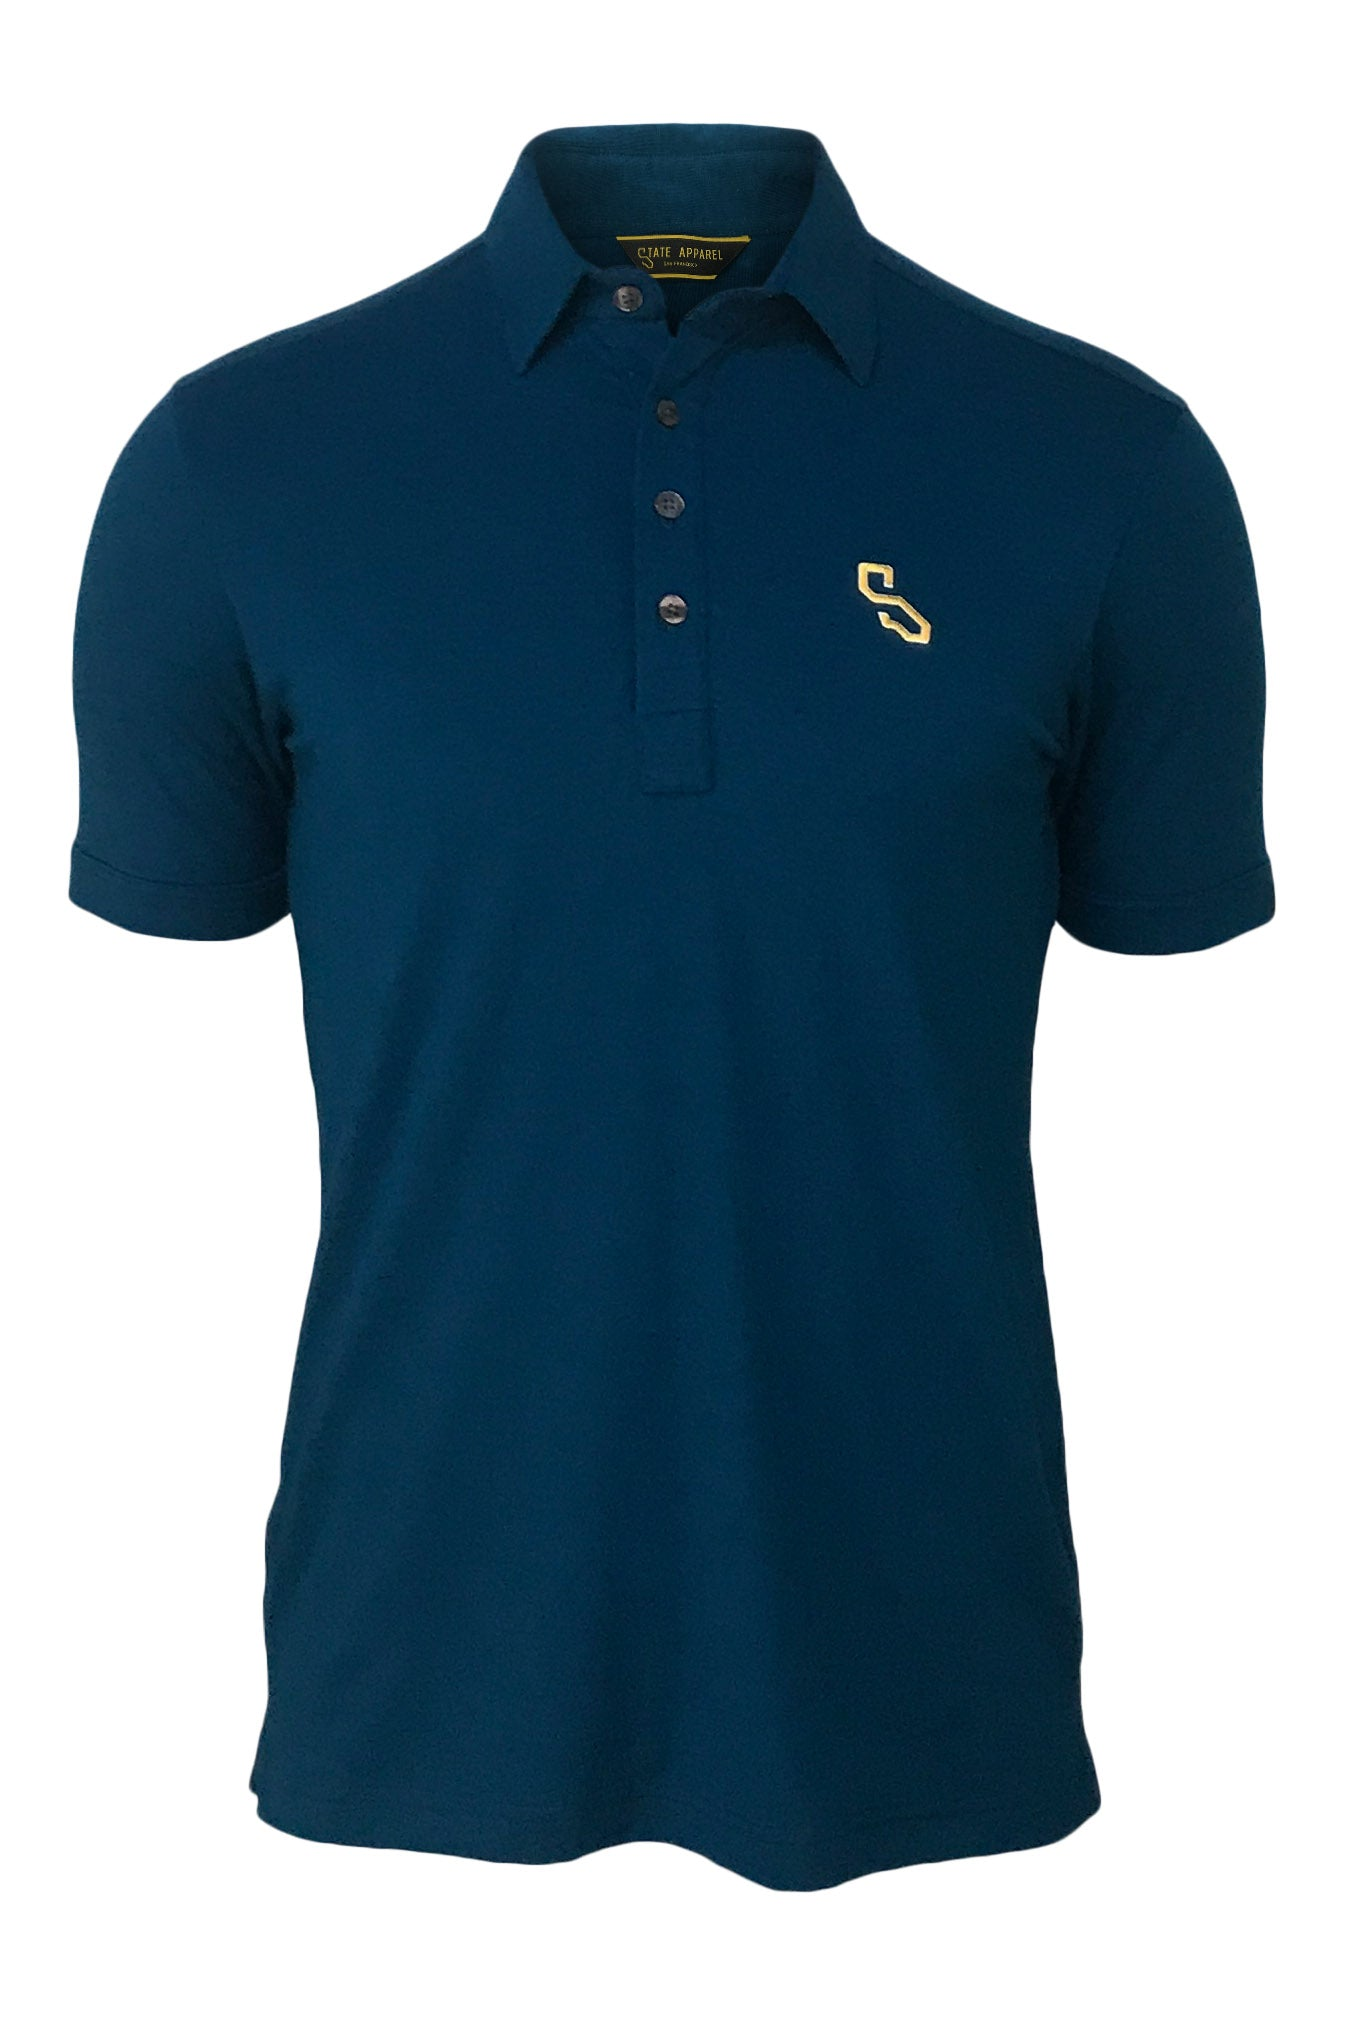 CLUB SHIRT - DEEP BLUE